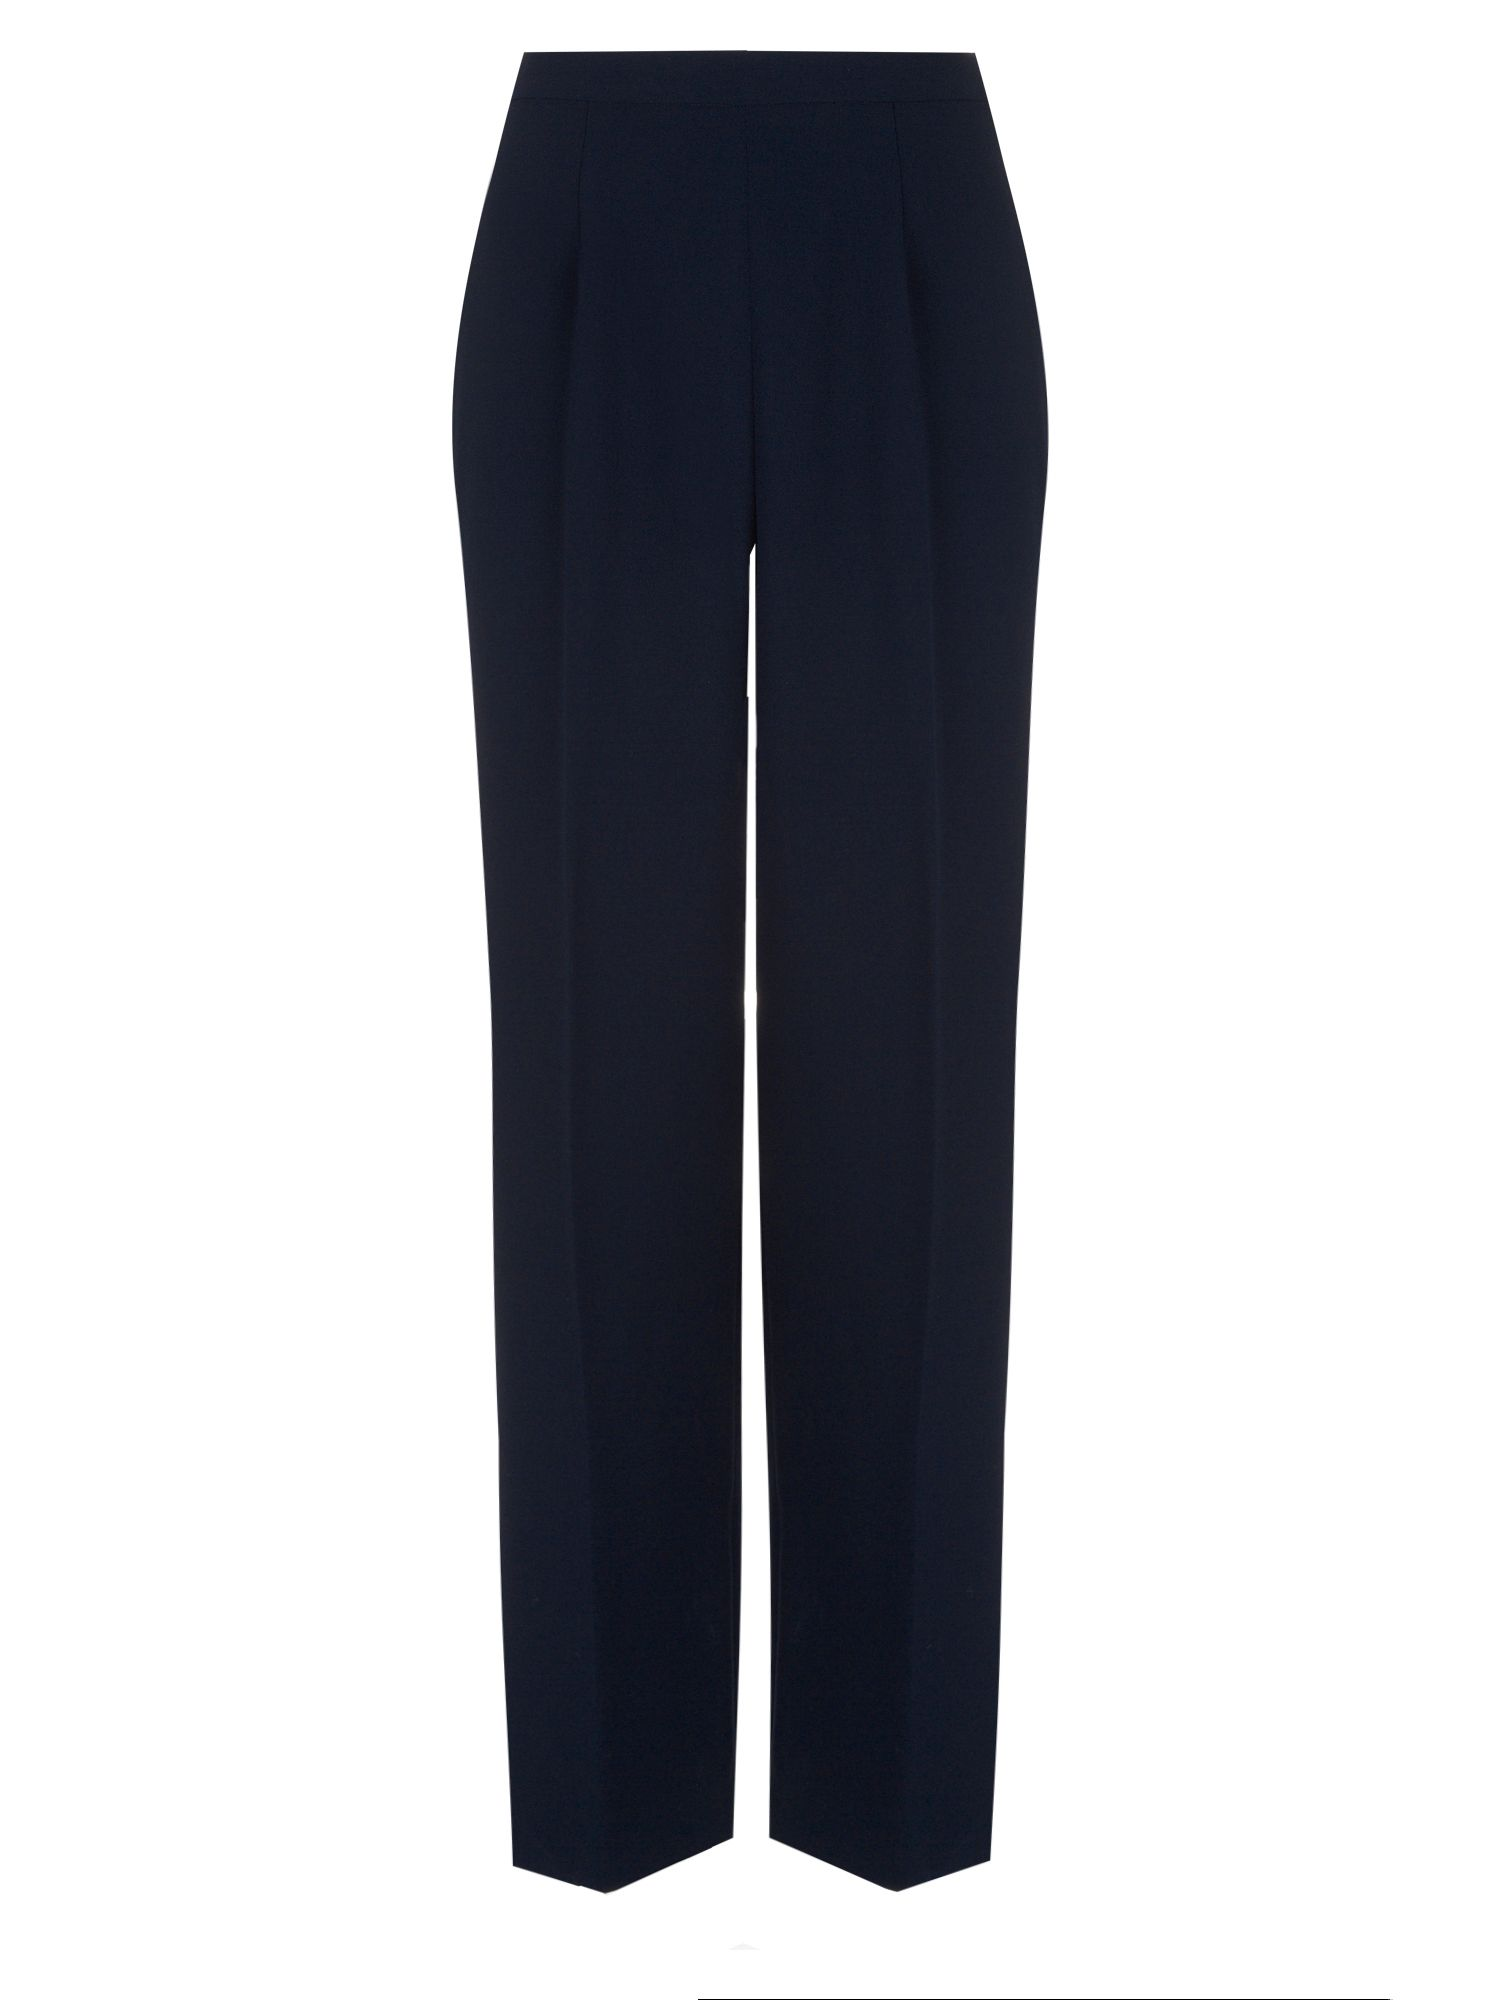 Classic shorter length navy trousers